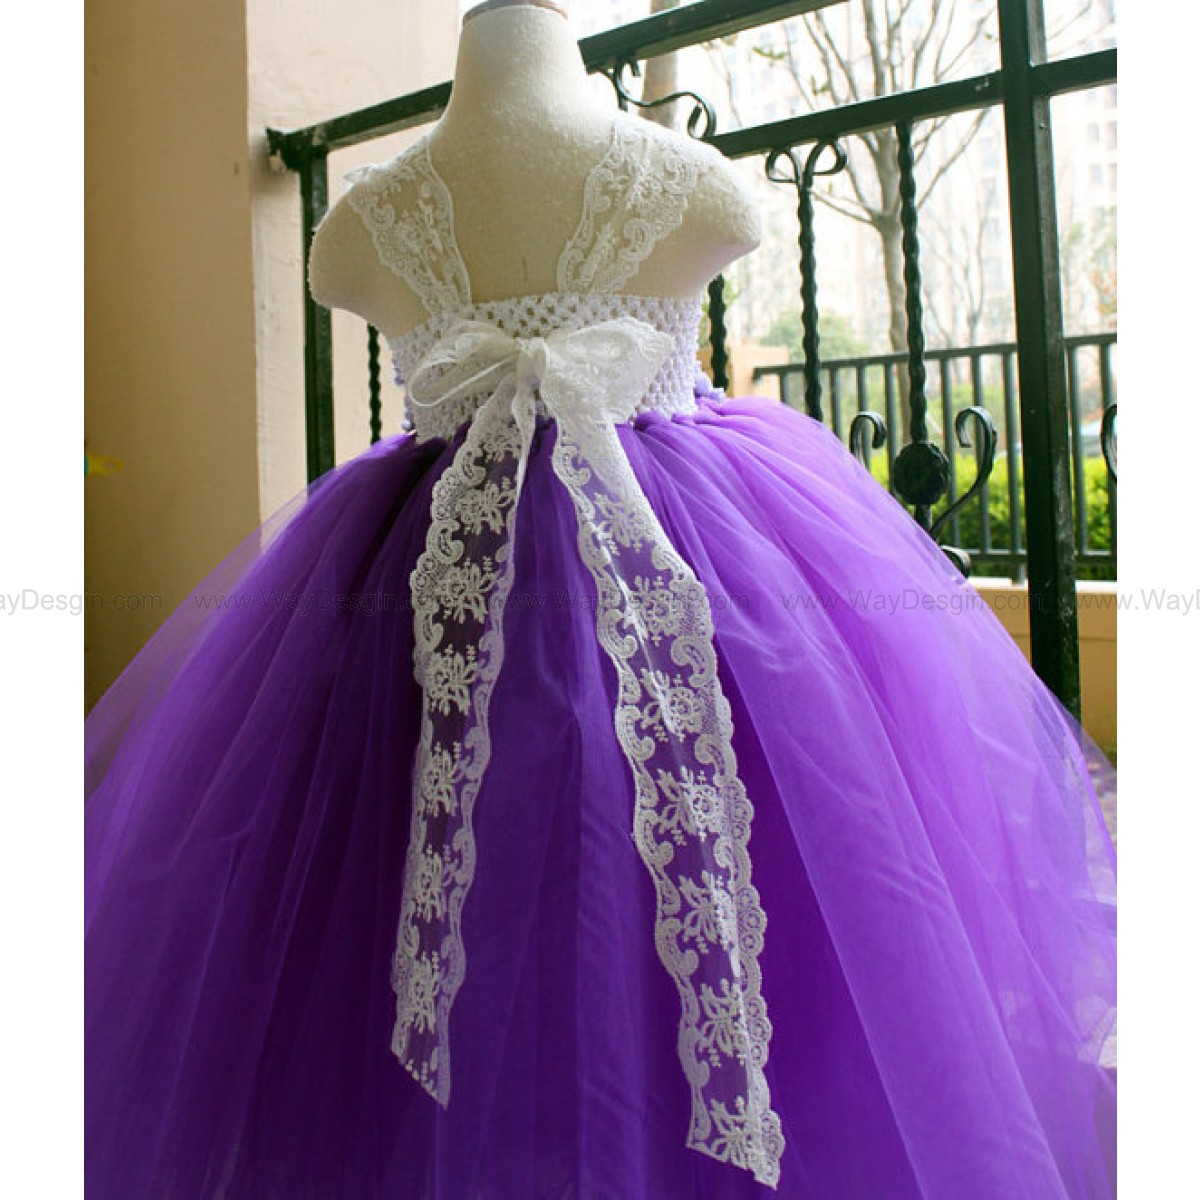 Flower Girl Dress Purple lace tutu dress baby dress toddler birthday dress wedding dress